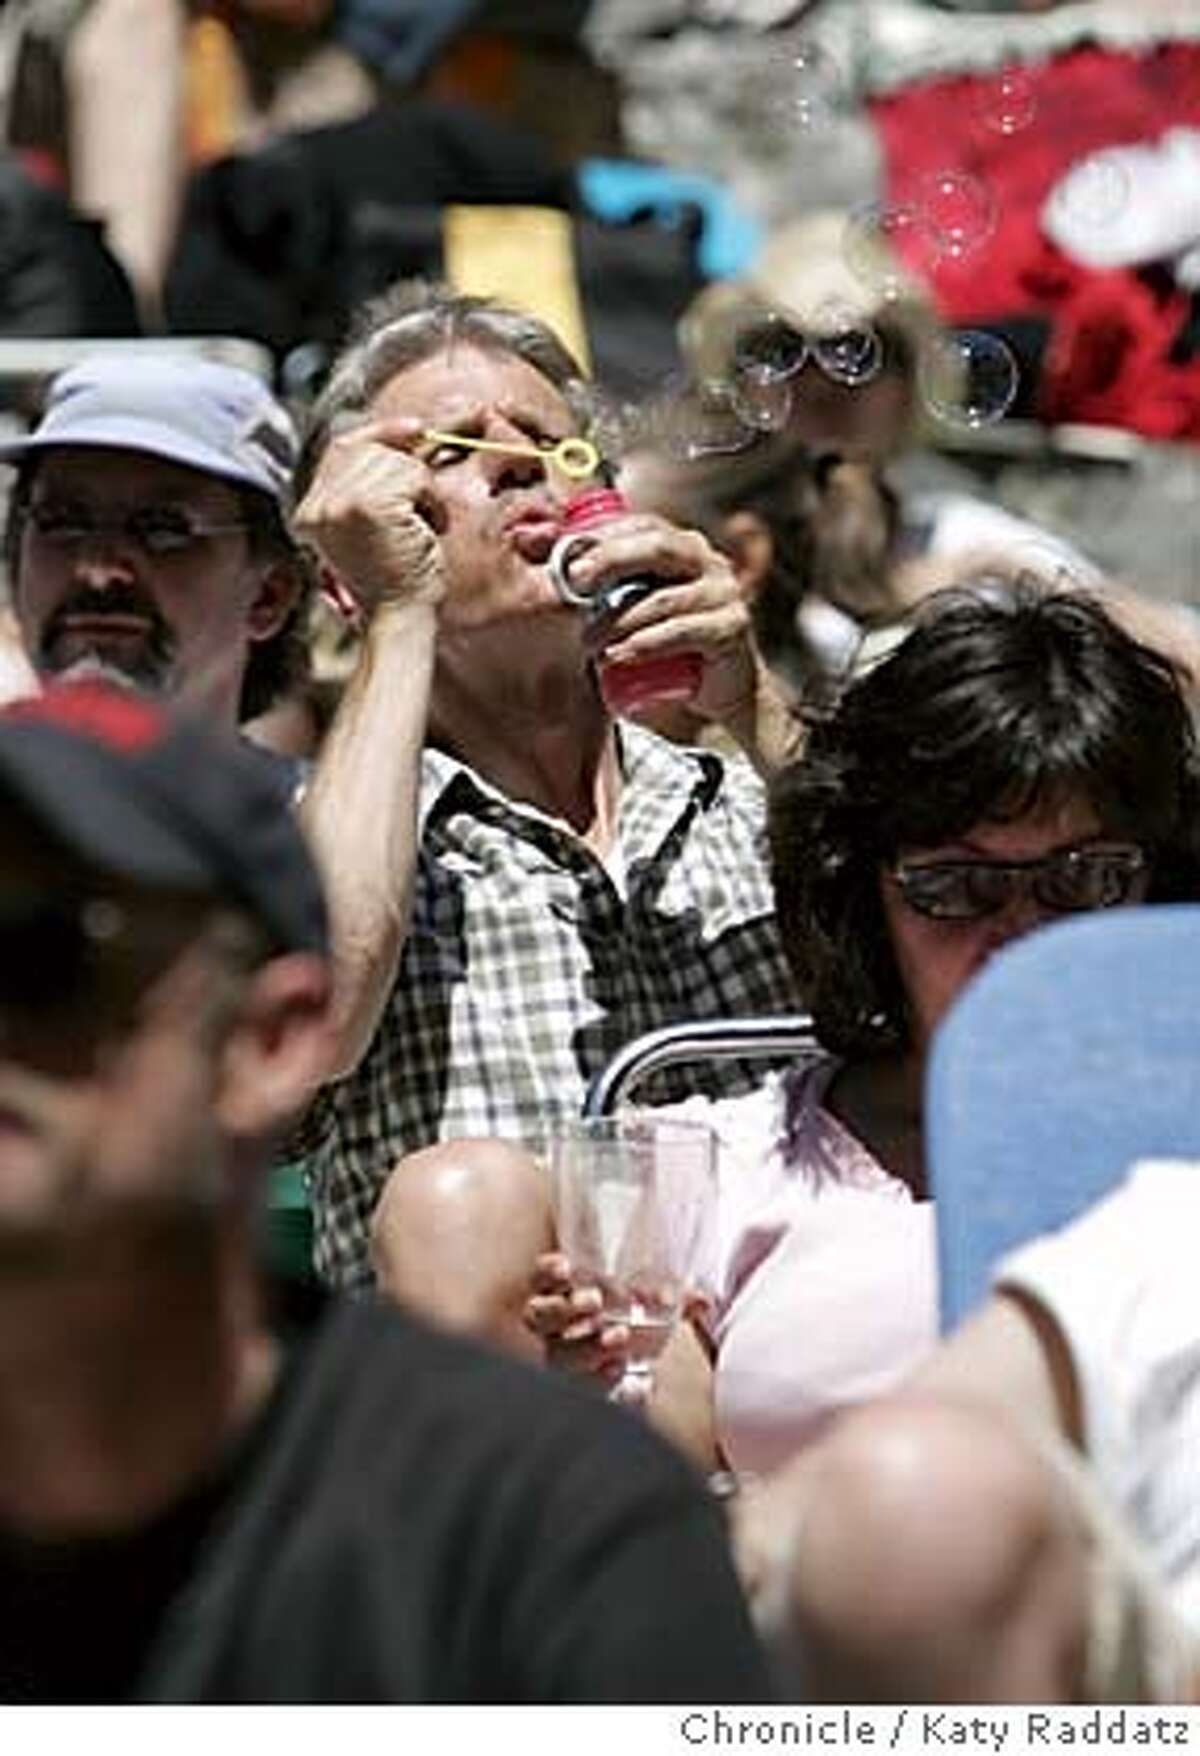 SHOWN: An UNIDENTIFIED MAN in the audience basks in the sunshine and blows bubbles while awaiting the performance. Stern Grove in San Francisco officially opens today, with performances by John Doe and Lucinda Williams. Photo taken on 6/19/05, in SAN FRANCISCO, CA. By Katy Raddatz / The San Francisco Chronicle